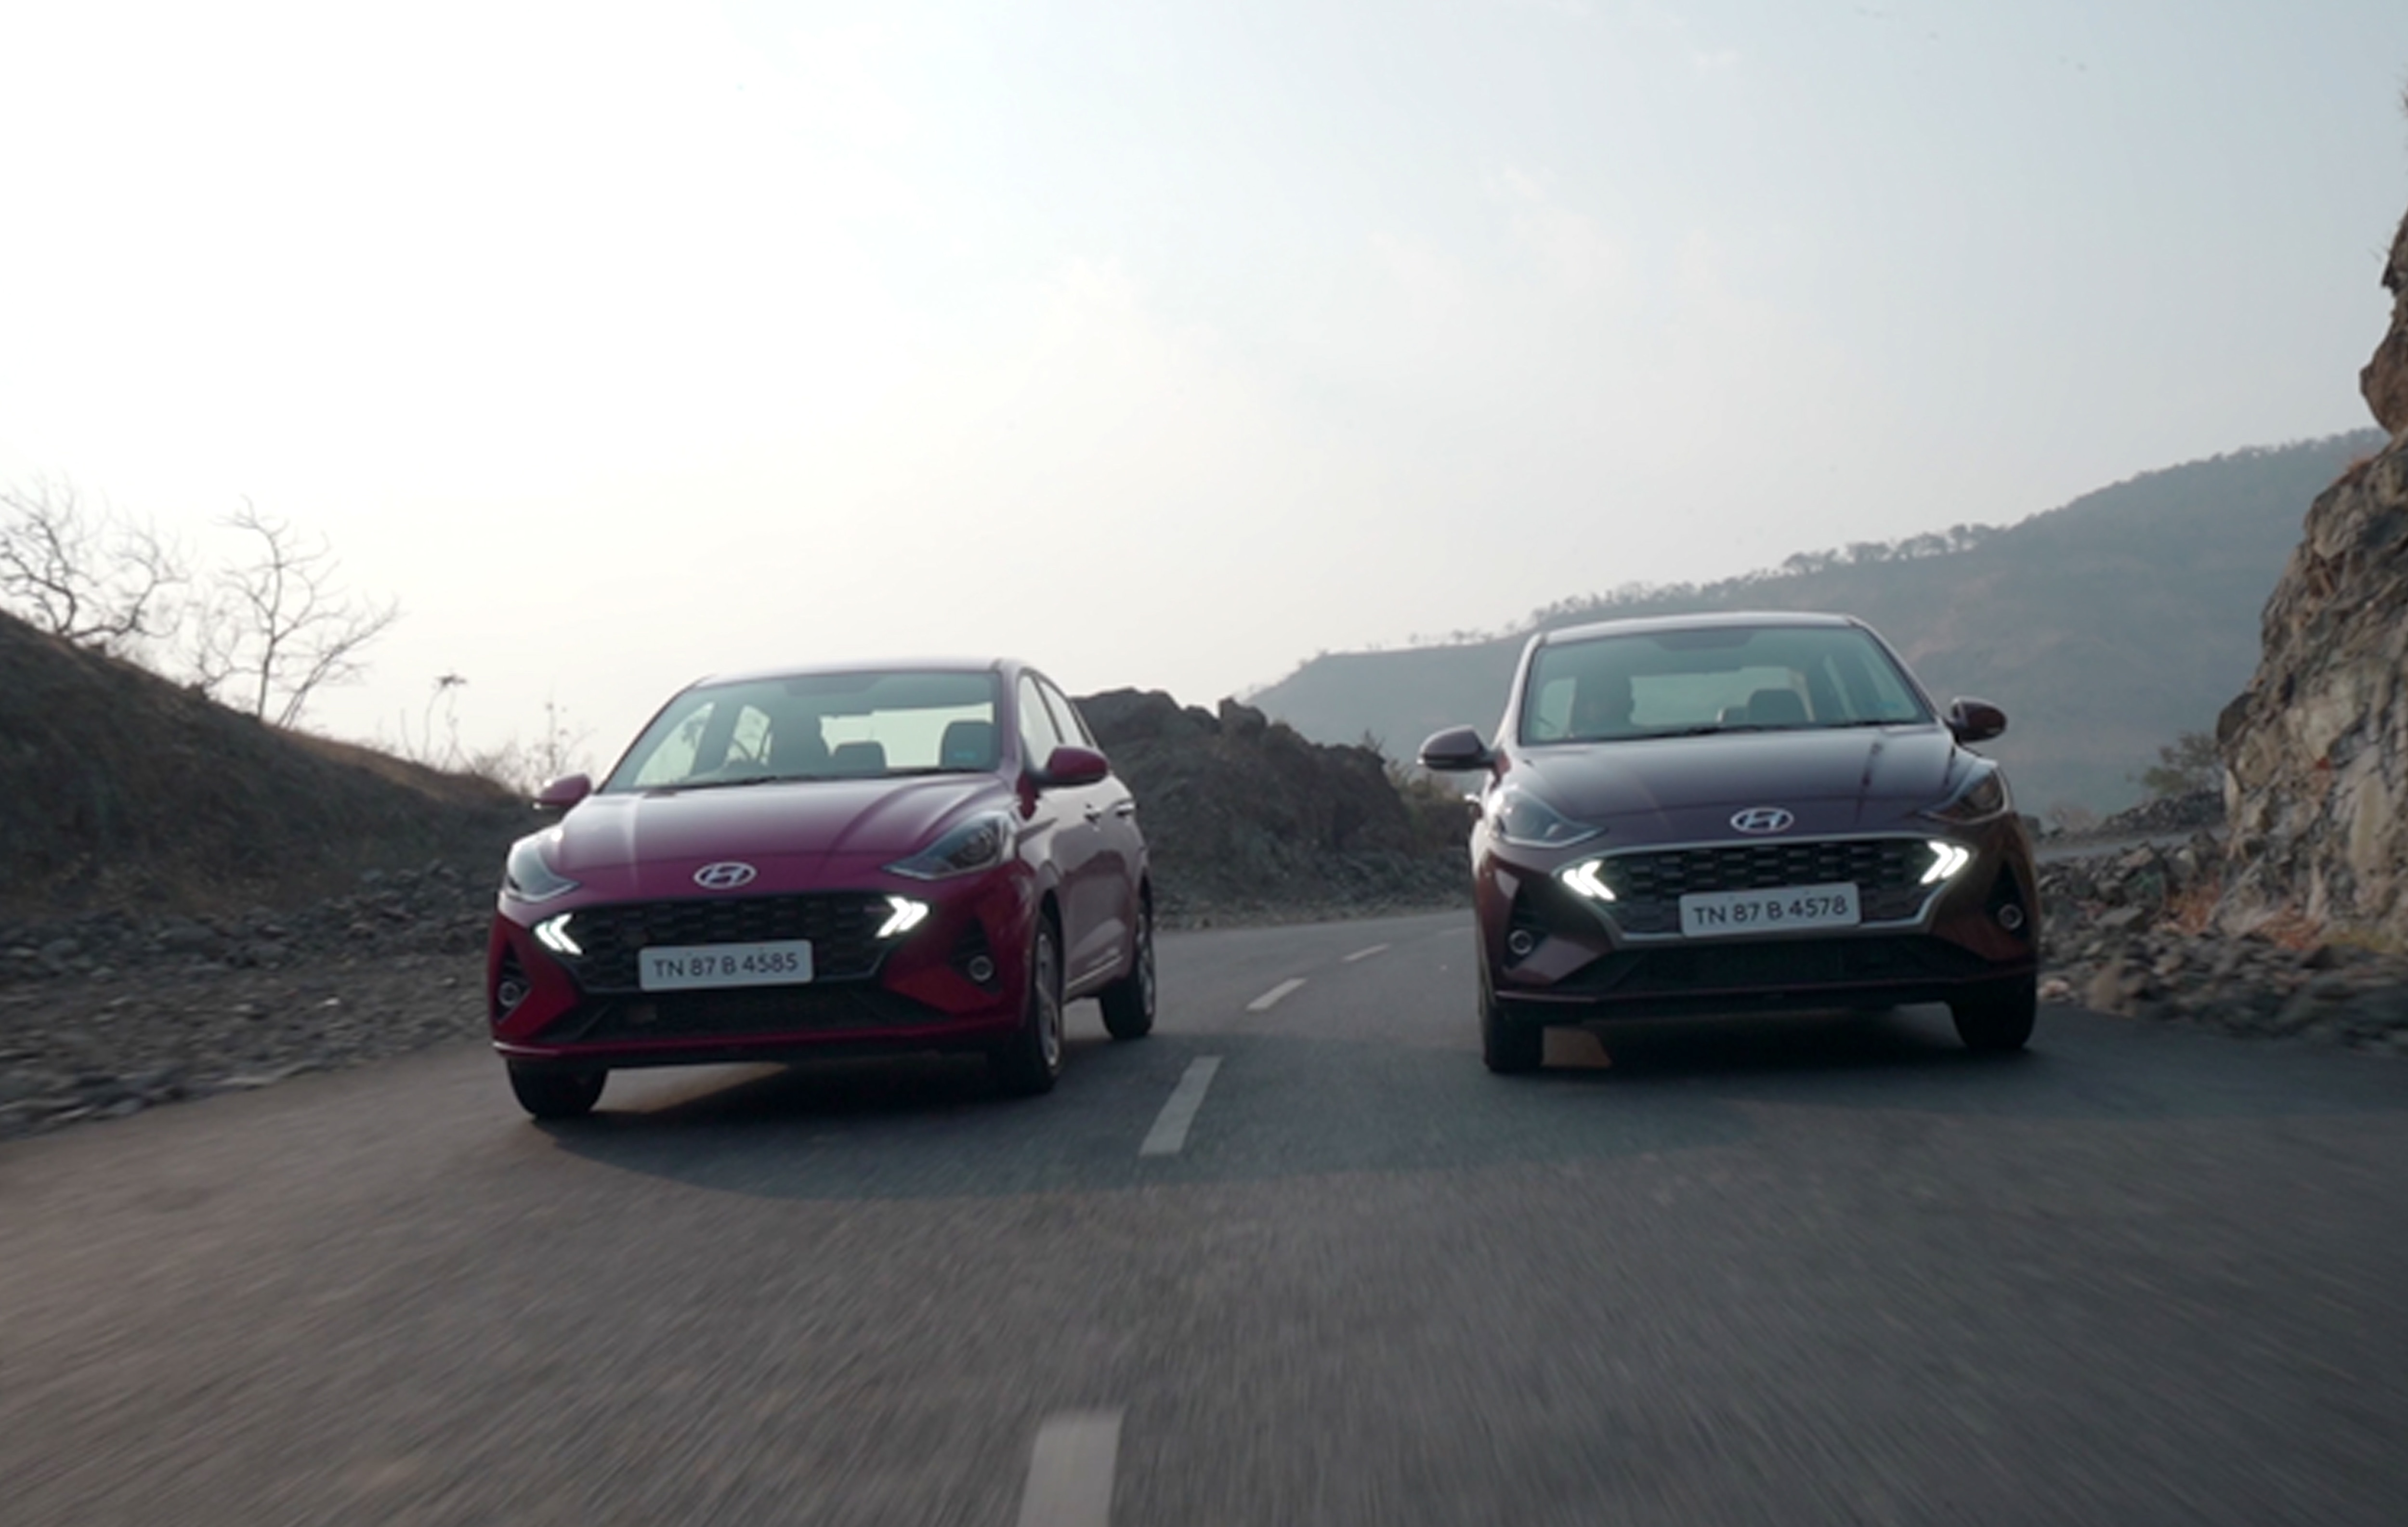 The Hyundai Aura is offered in a 1.2 litre petrol, a 1.2-litre diesel and a 1.0 litre turbo petrol option.  There is also an option of a factory-fitted CNG. All engines are BS 6 compliant.